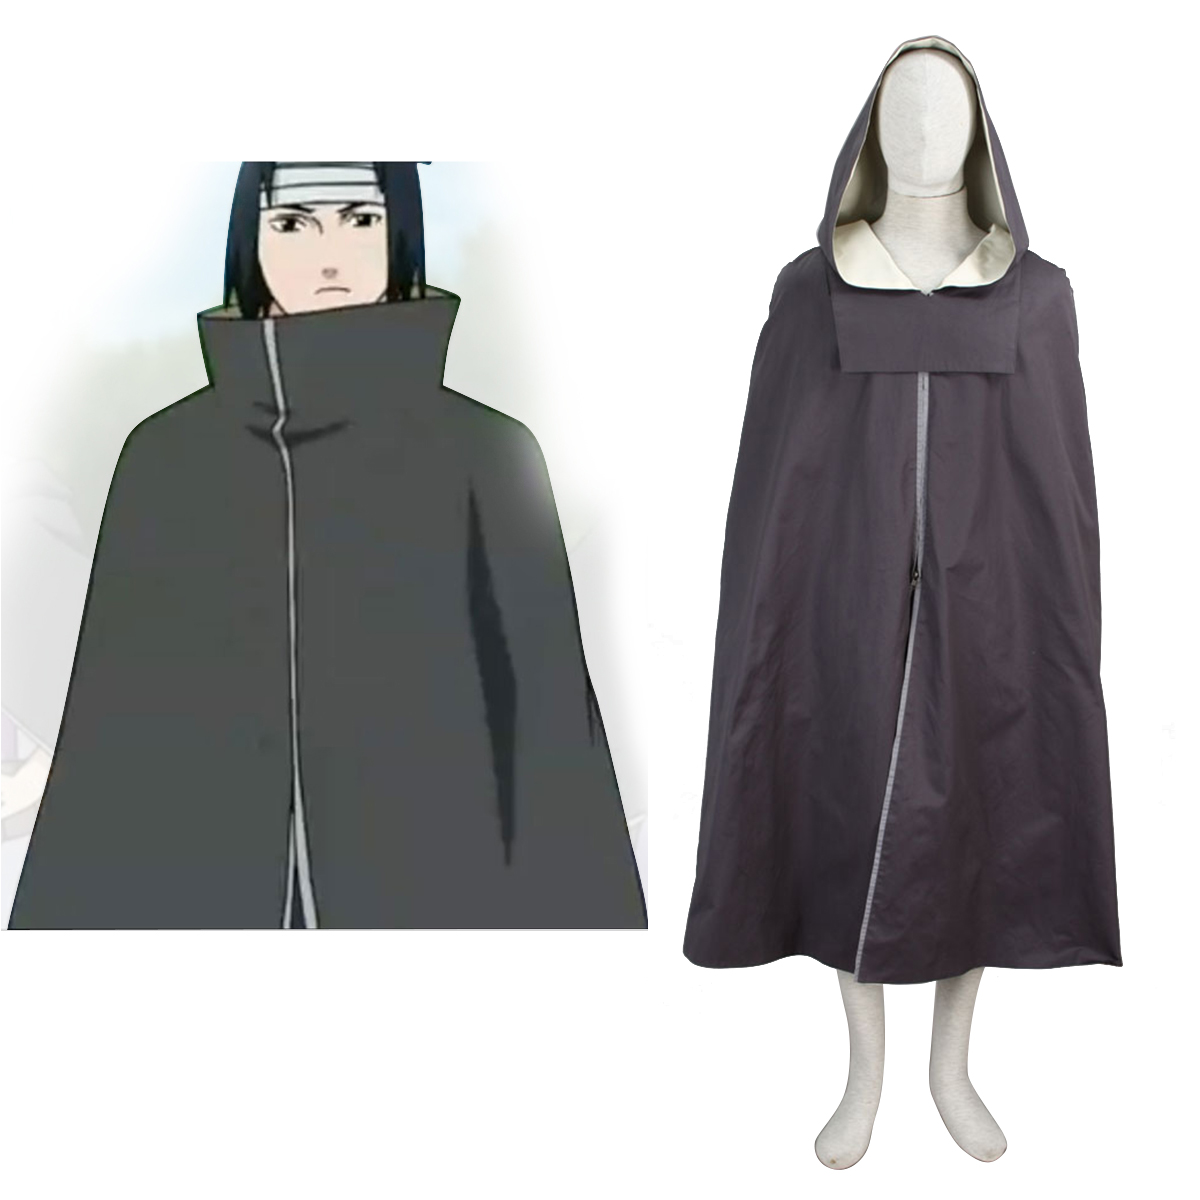 Naruto Taka Organization Cloak 1 Anime Cosplay Costumes Outfit